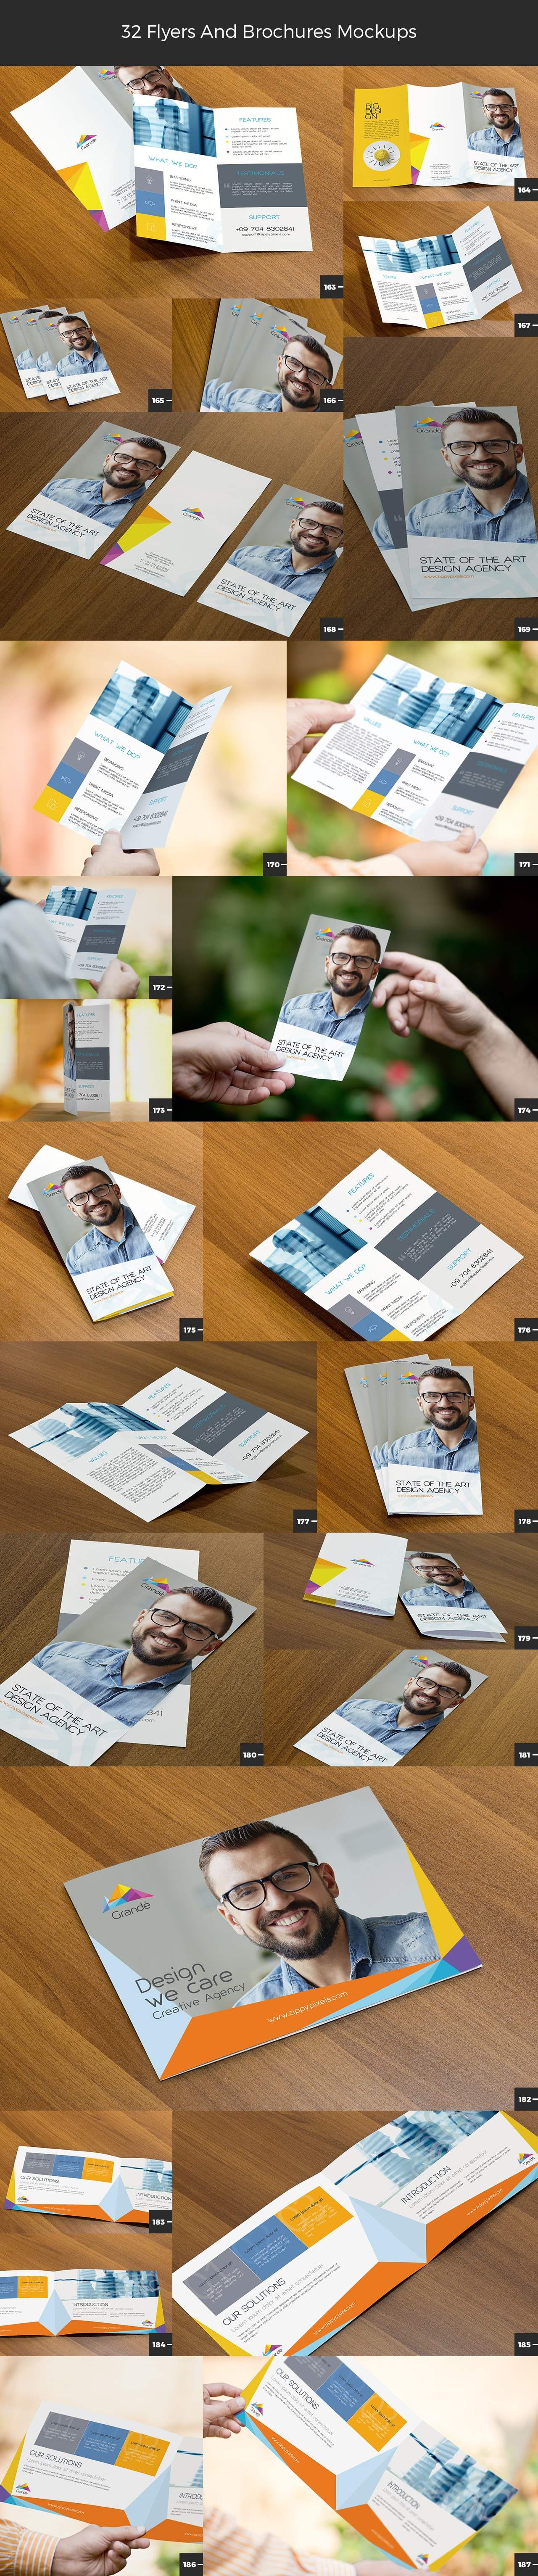 flyers-and-brochure-mockups